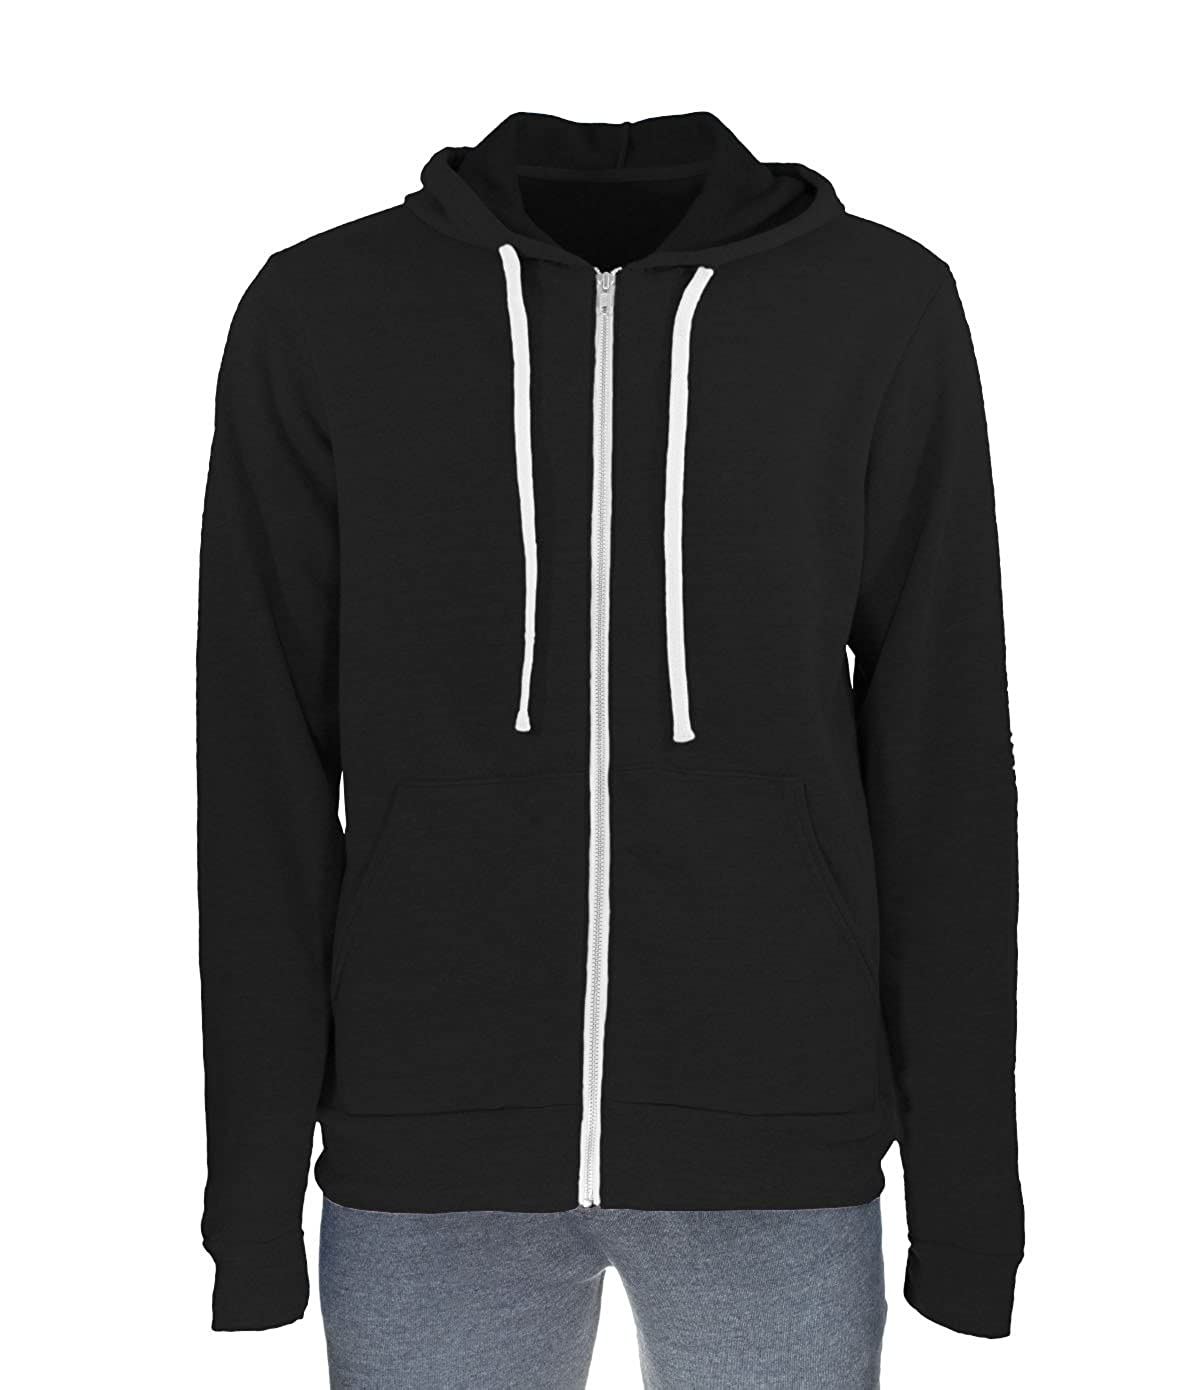 Nayked Apparel Mens Ridiculously Soft Fleece Full-Zip Hoodie